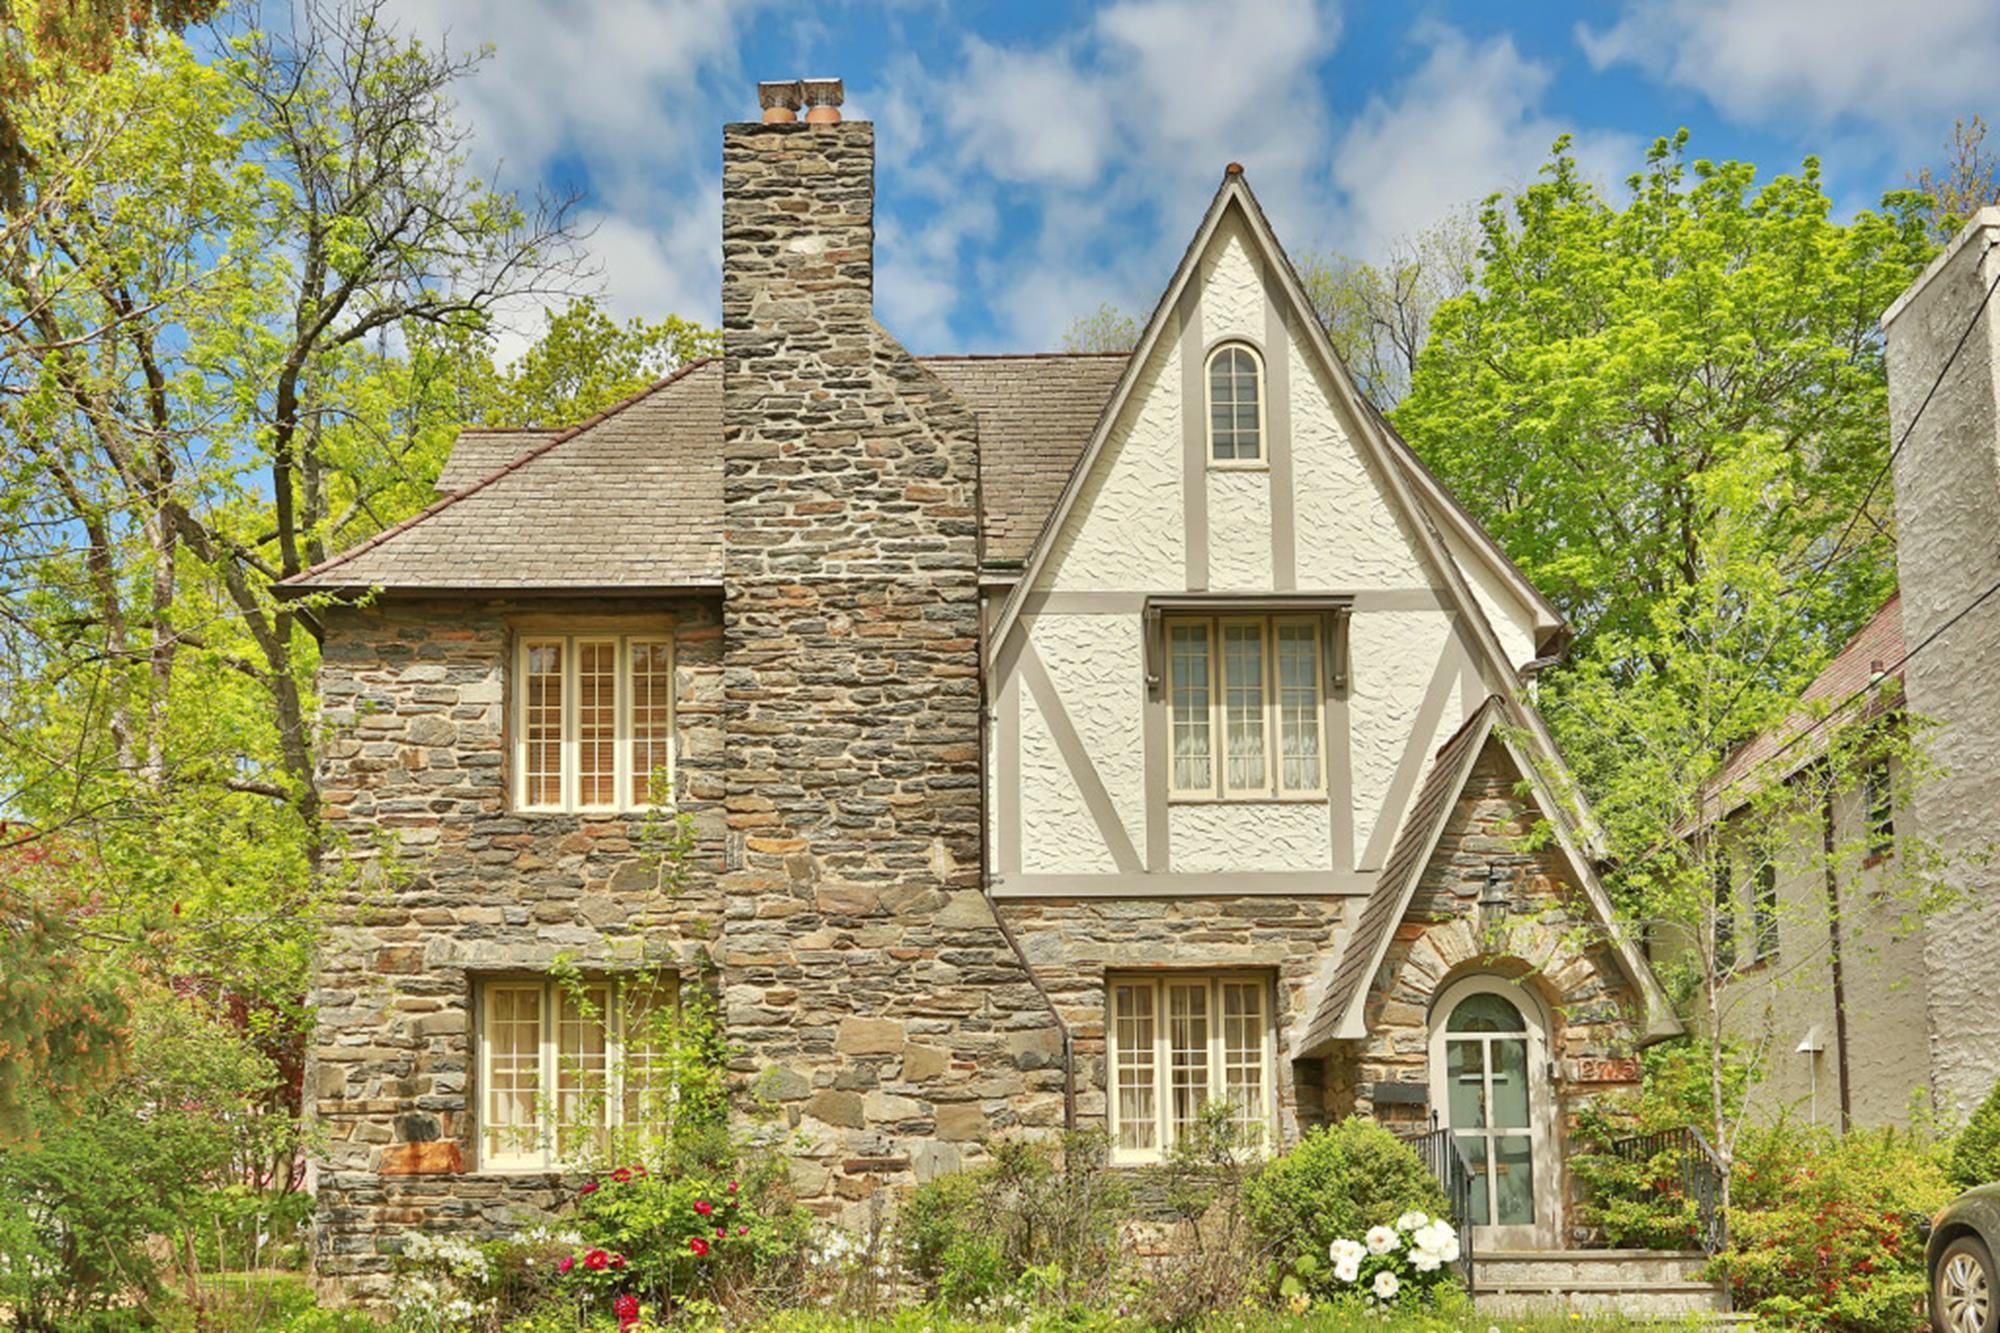 Classic 4-Bd. Stone & Stucco Tudor-Style House w/ Patio & Backyard on Arlington Avenue